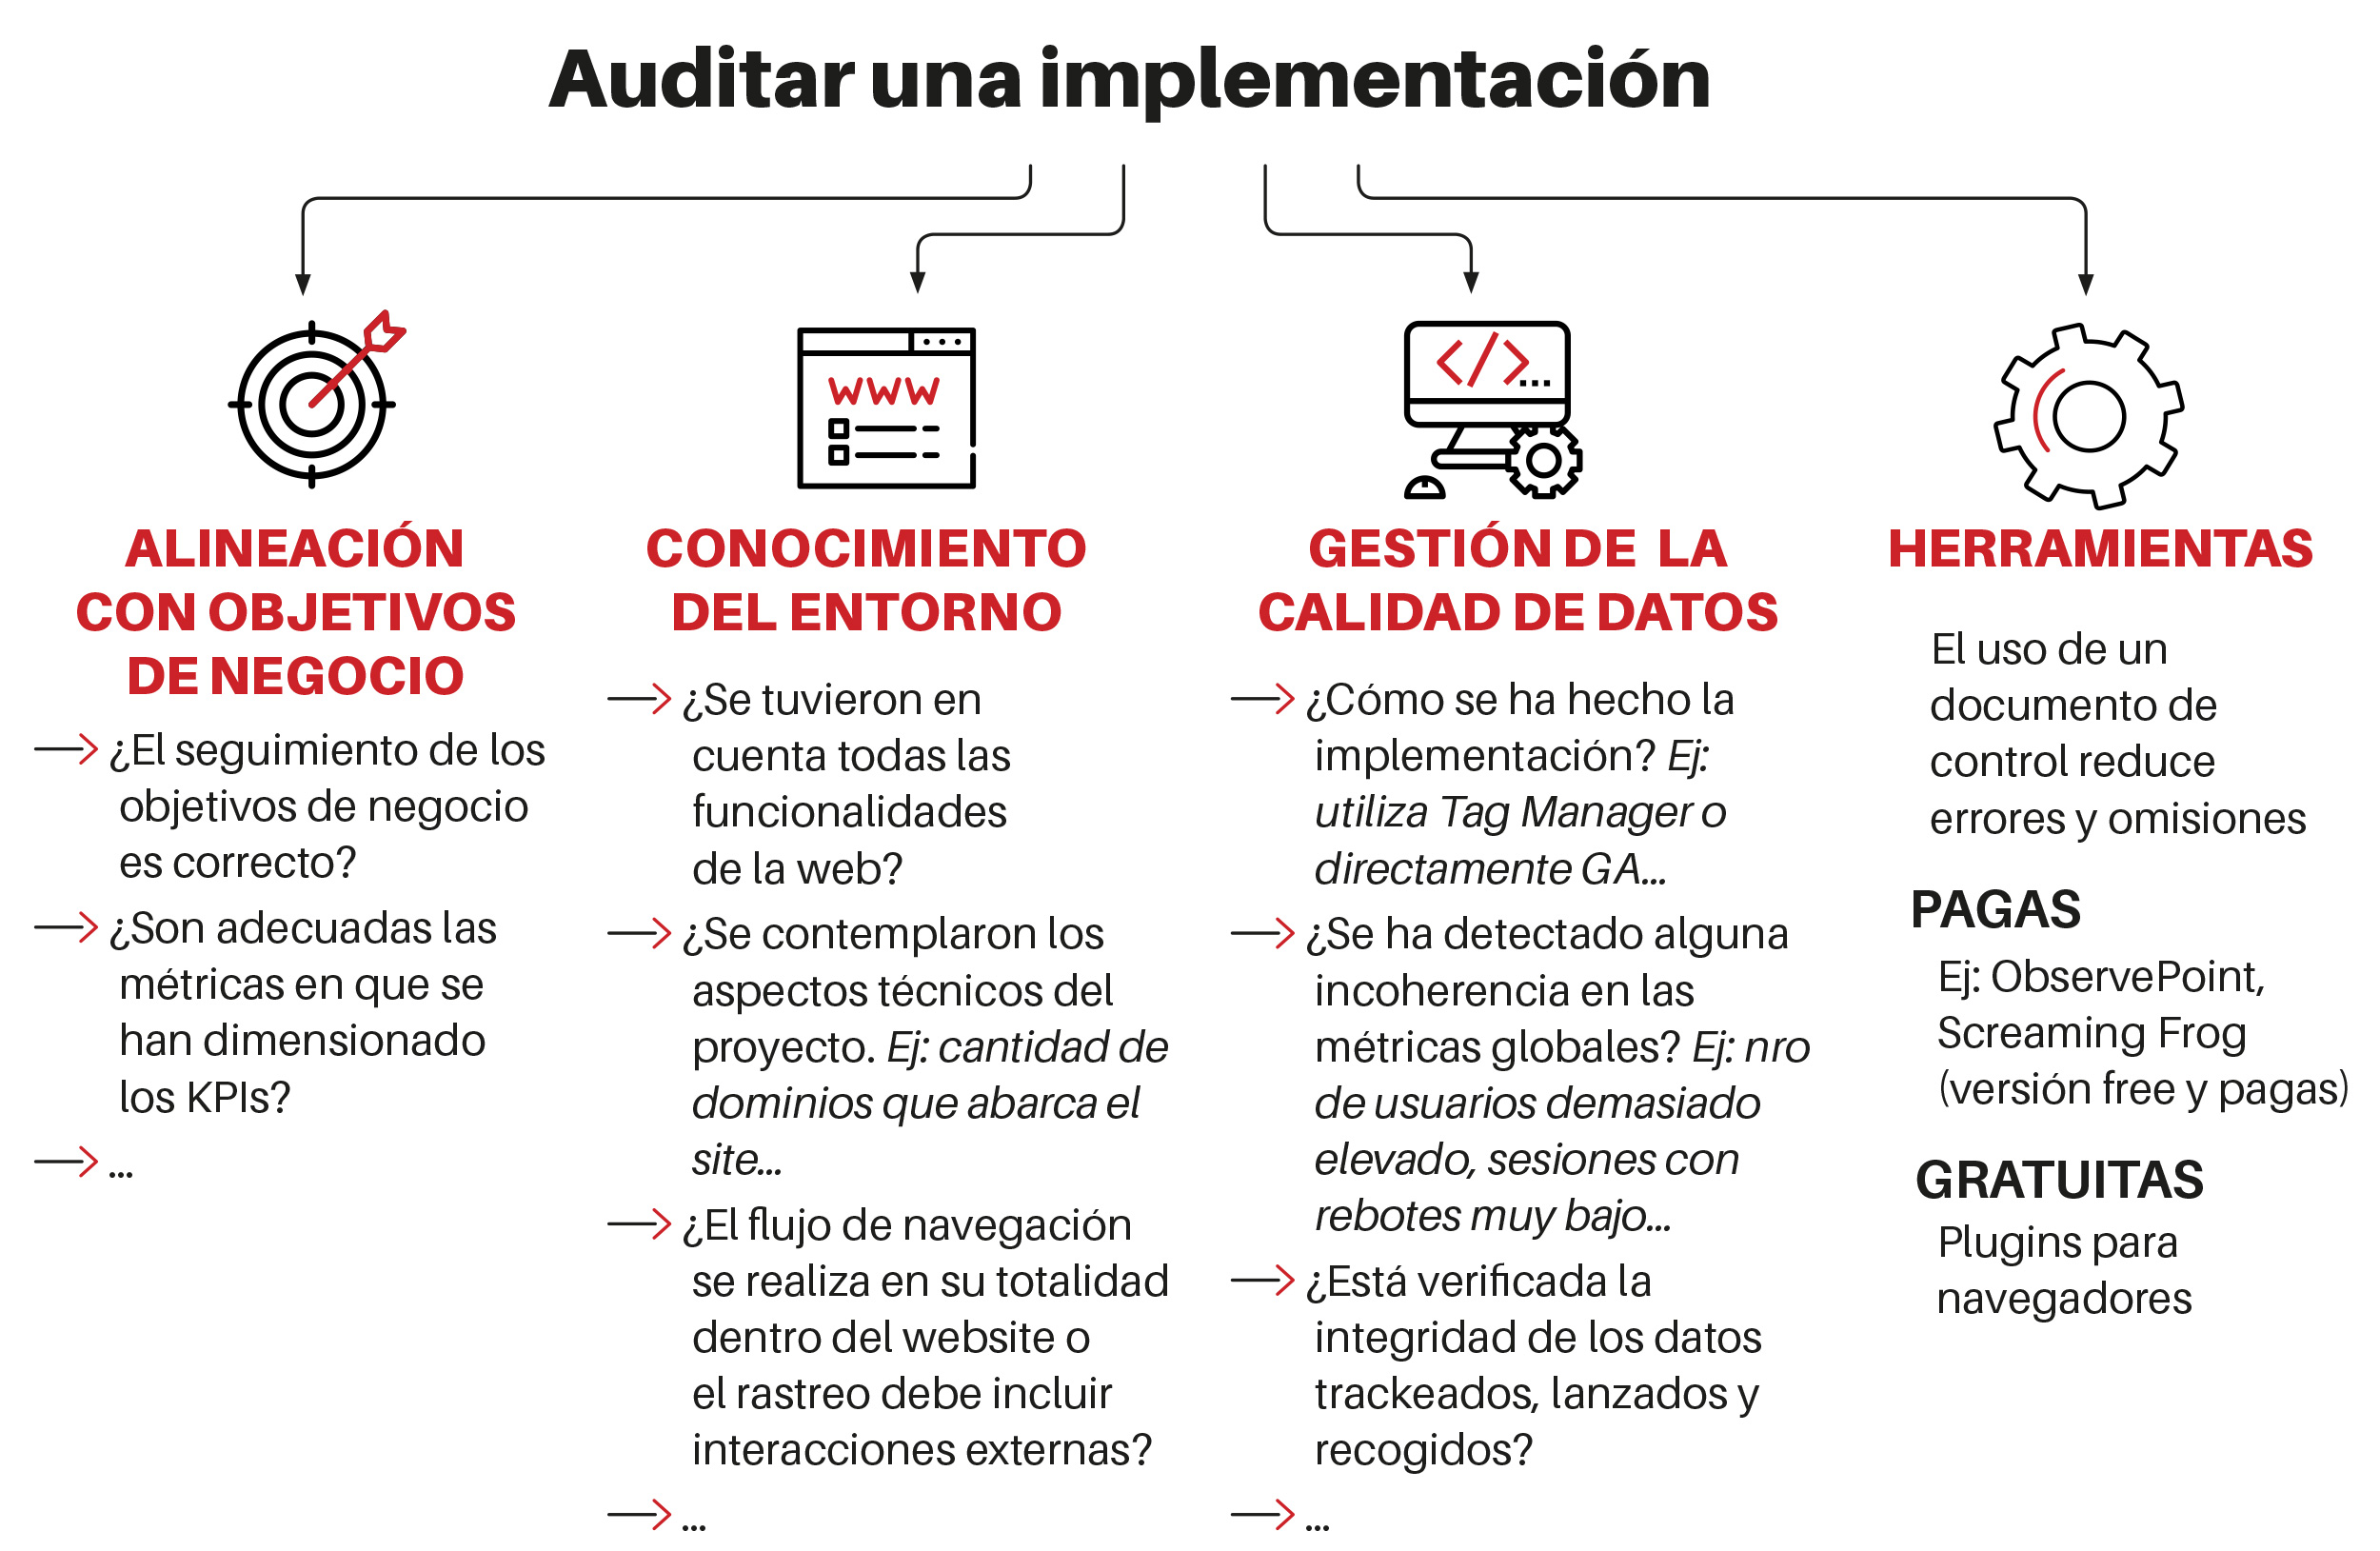 auditoria-implementacion_02